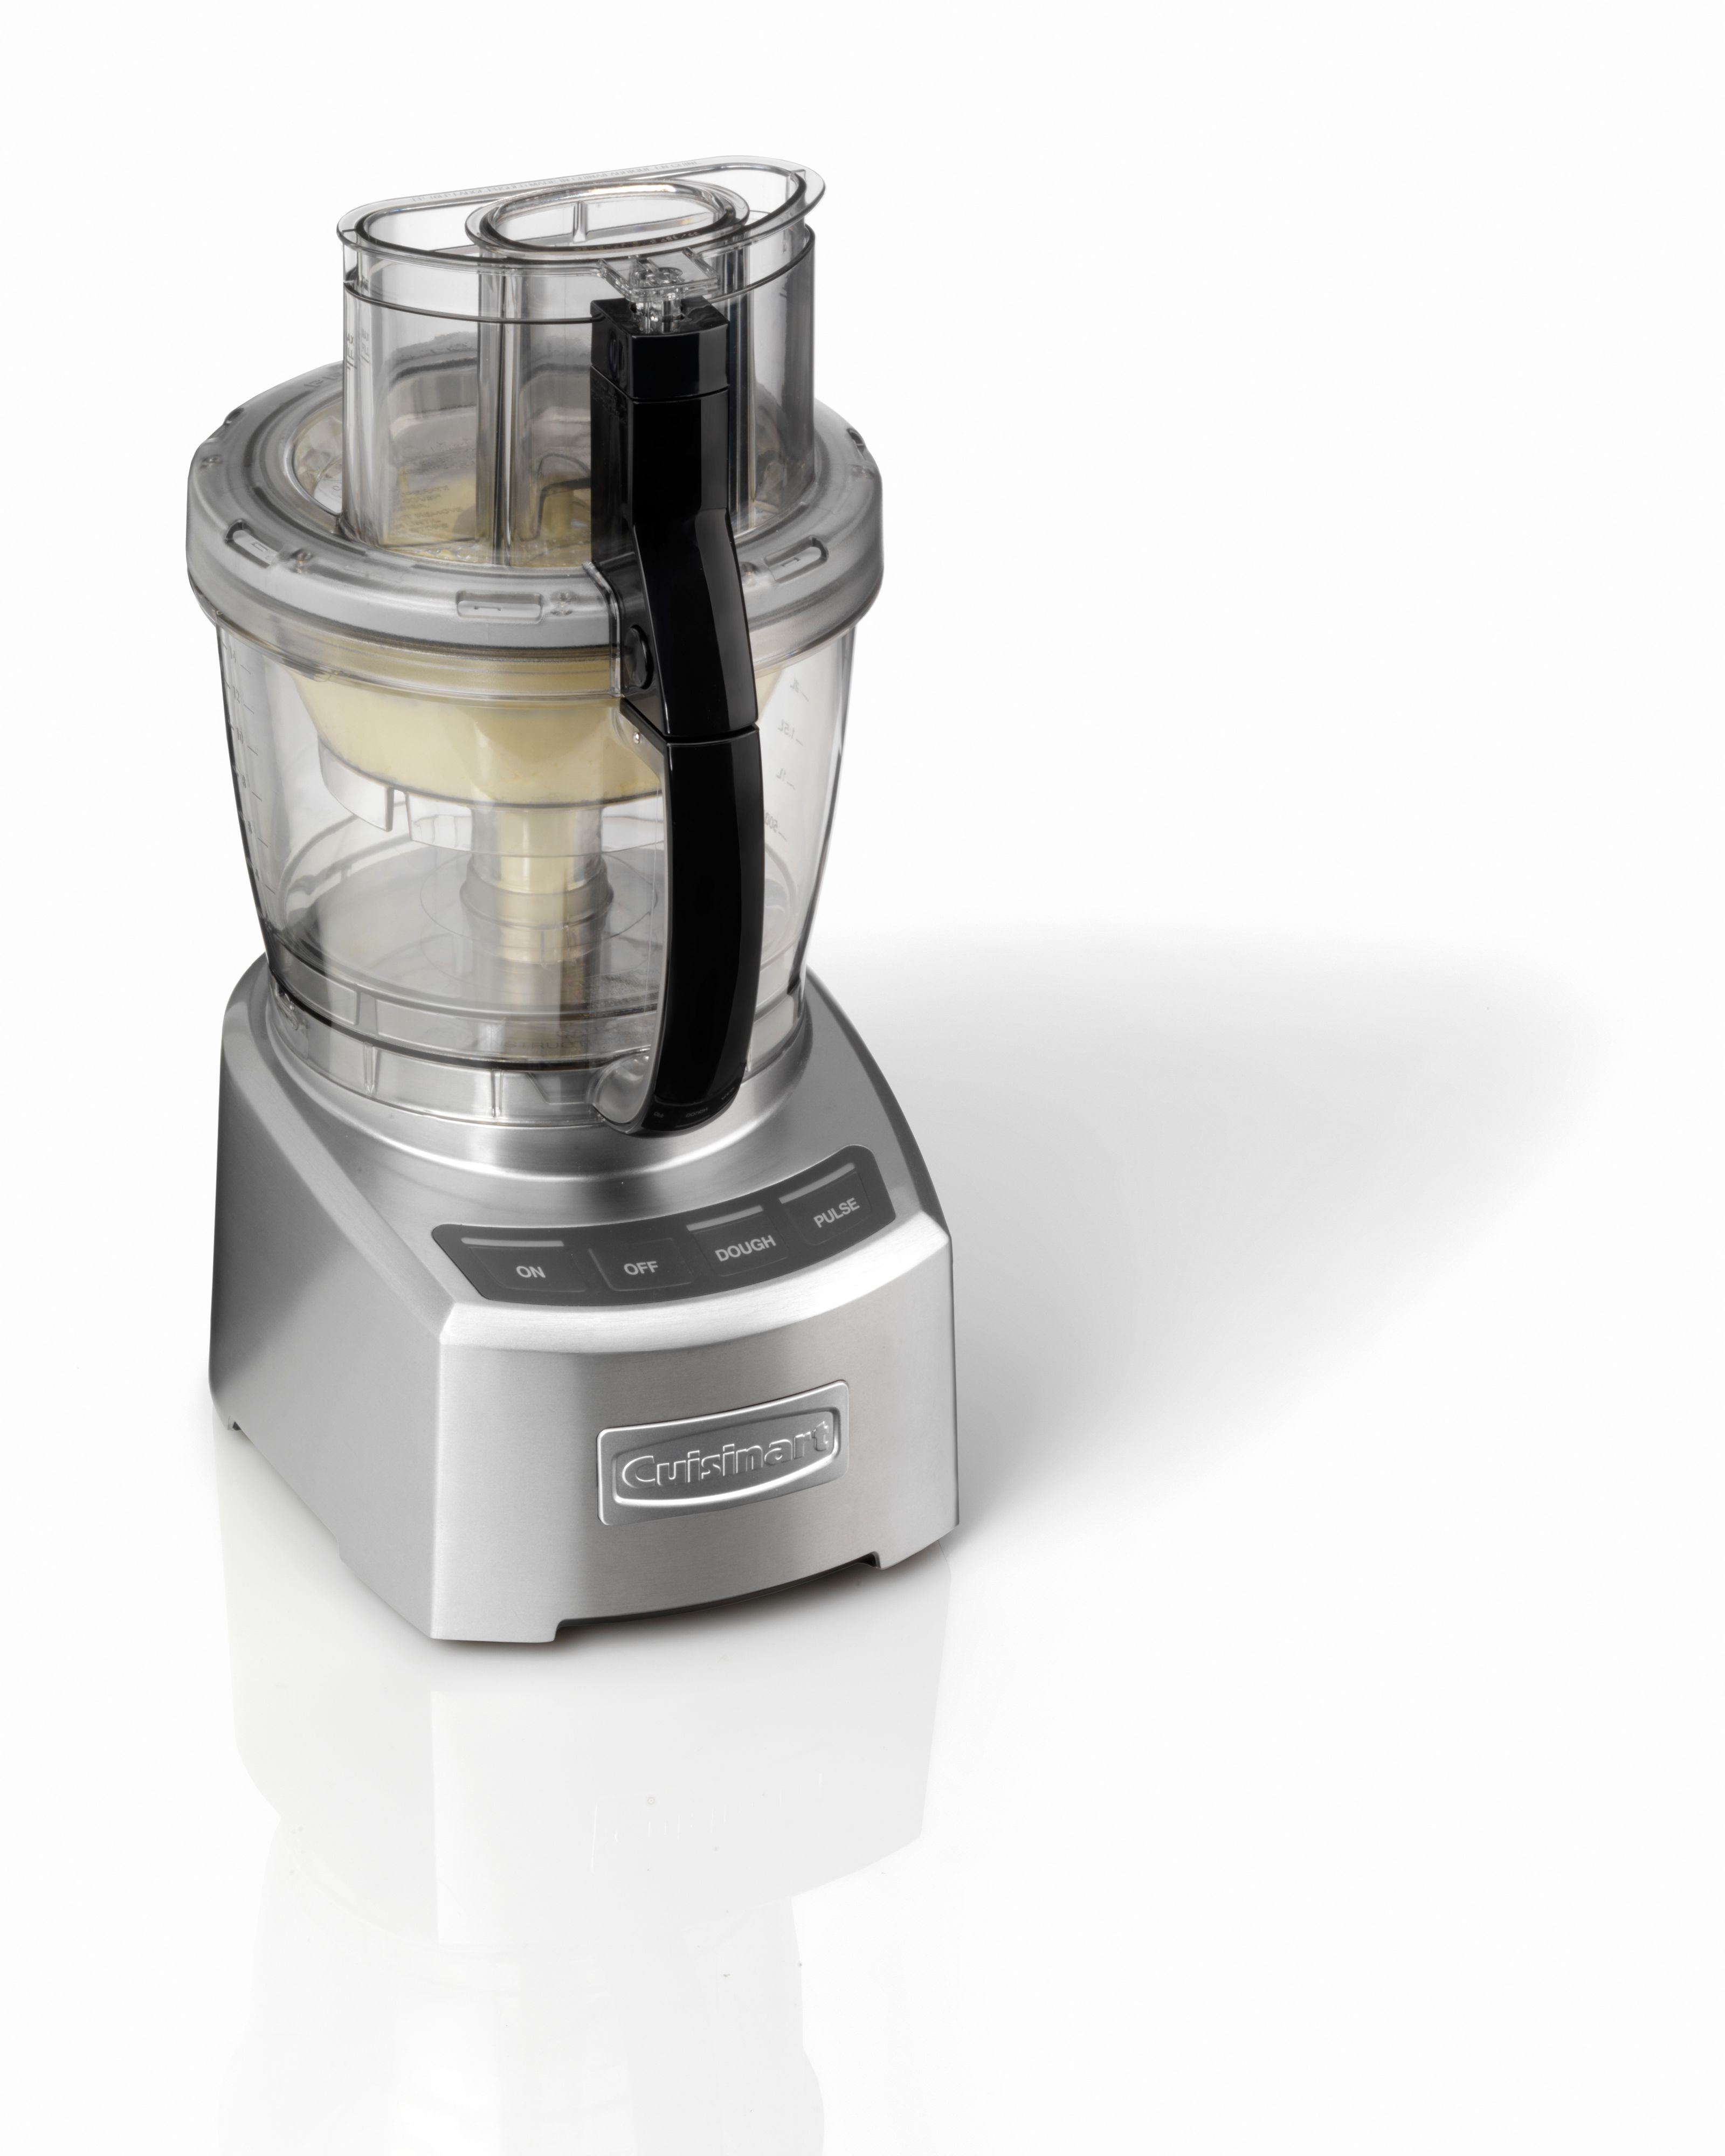 FP16DCU elite food processor